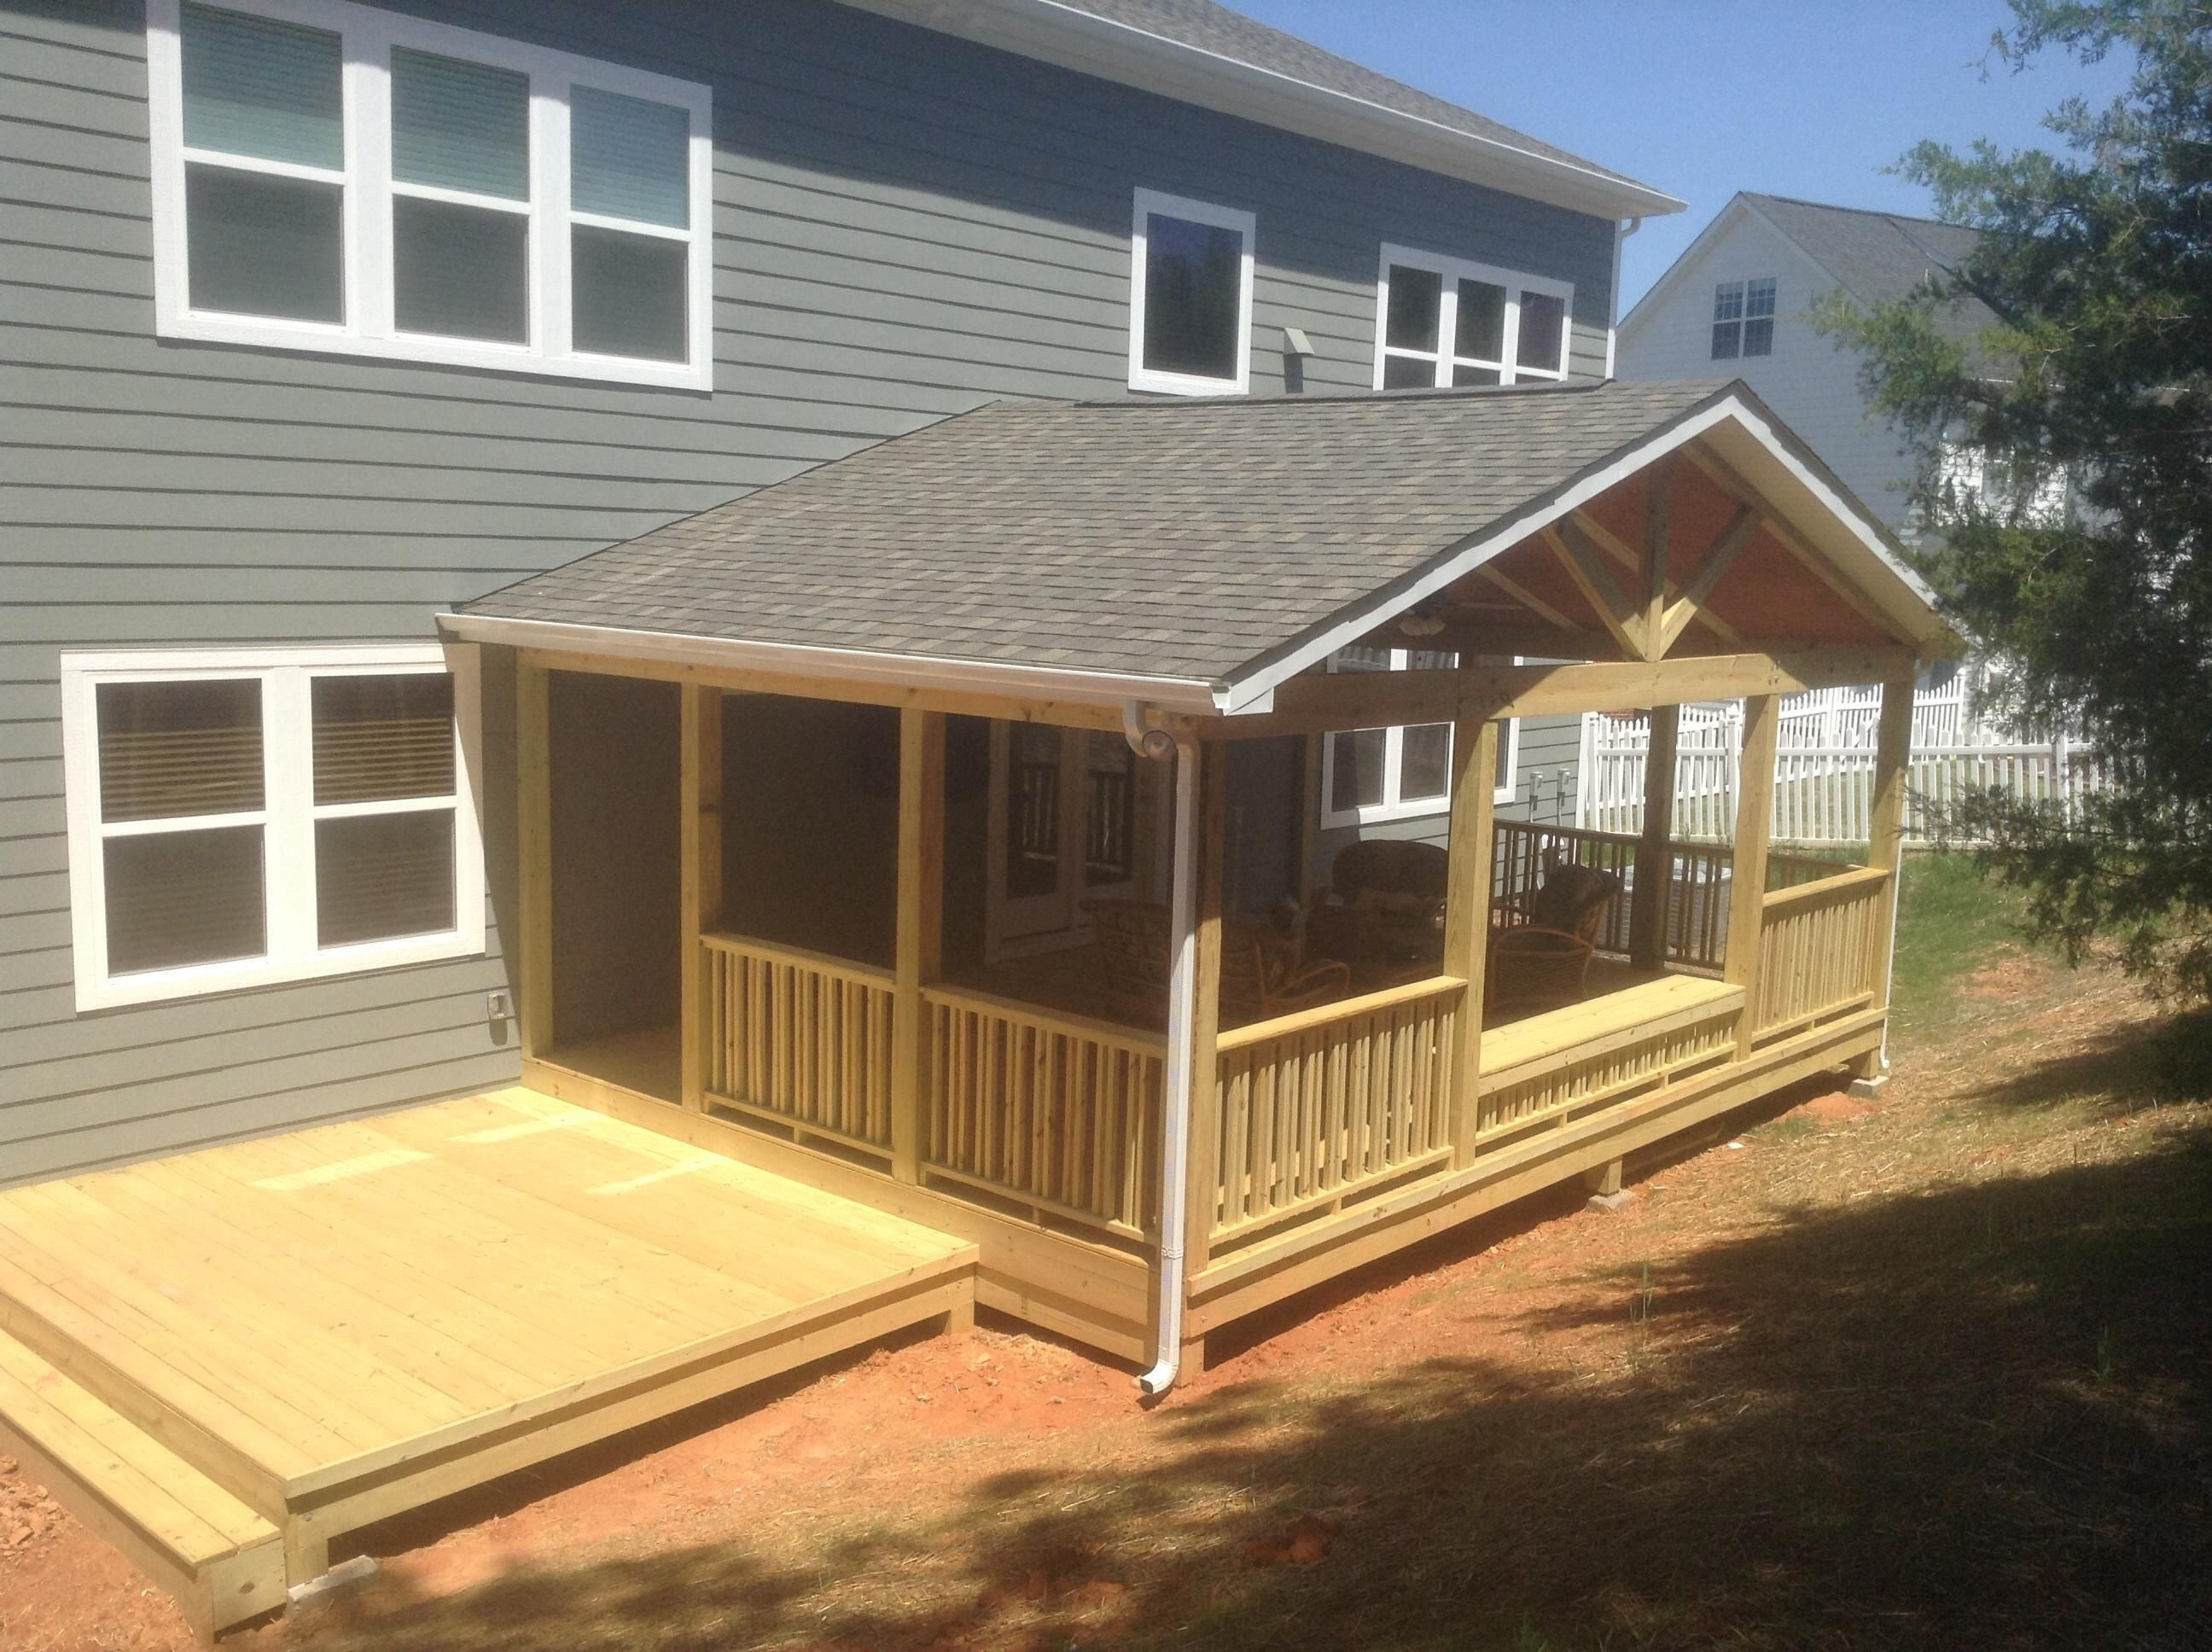 Designed 16 39 x 24 39 covered deck with10 39 x 12 39 sun deck for Coverd deck